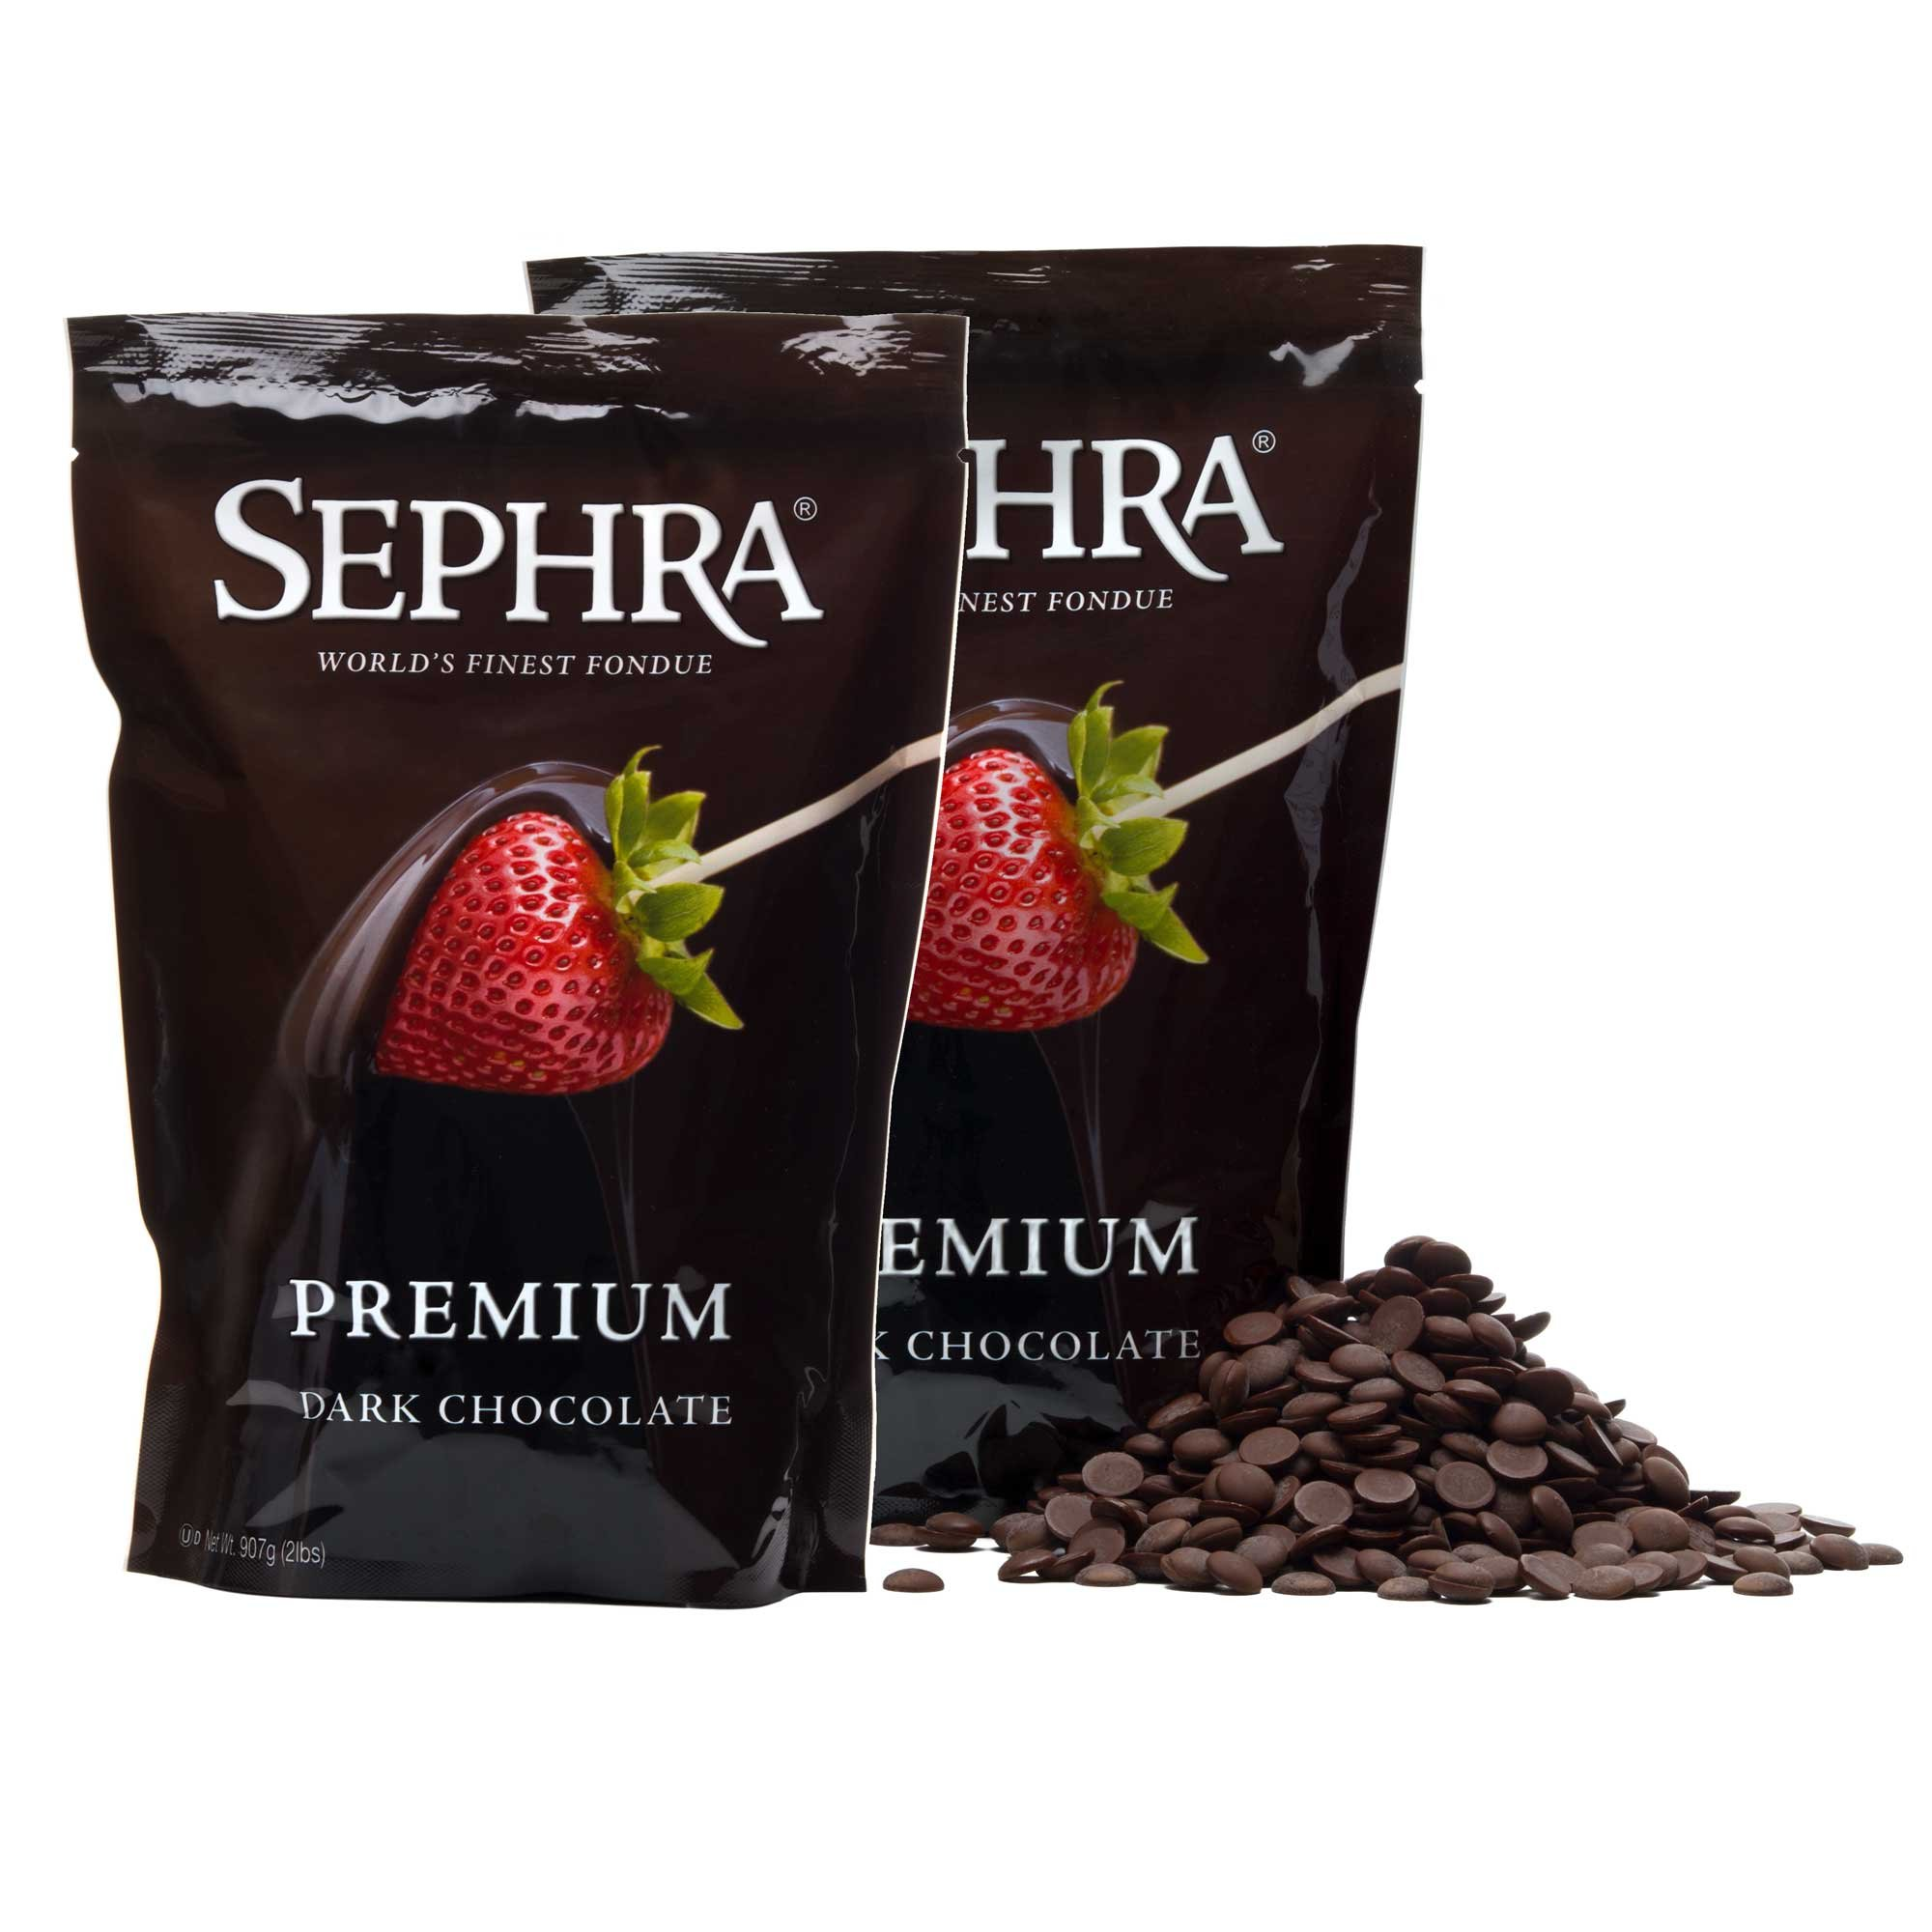 Sephra Premium Dark Fondue Chocolate for Chocolate Fountain, Kosher Dairy, Gluten and Trans Fat Free Dipping Chocolate, Chocolate Fountain Dark Chocolate Fondue, Best Baking Chocolate Chips, 4 LBS